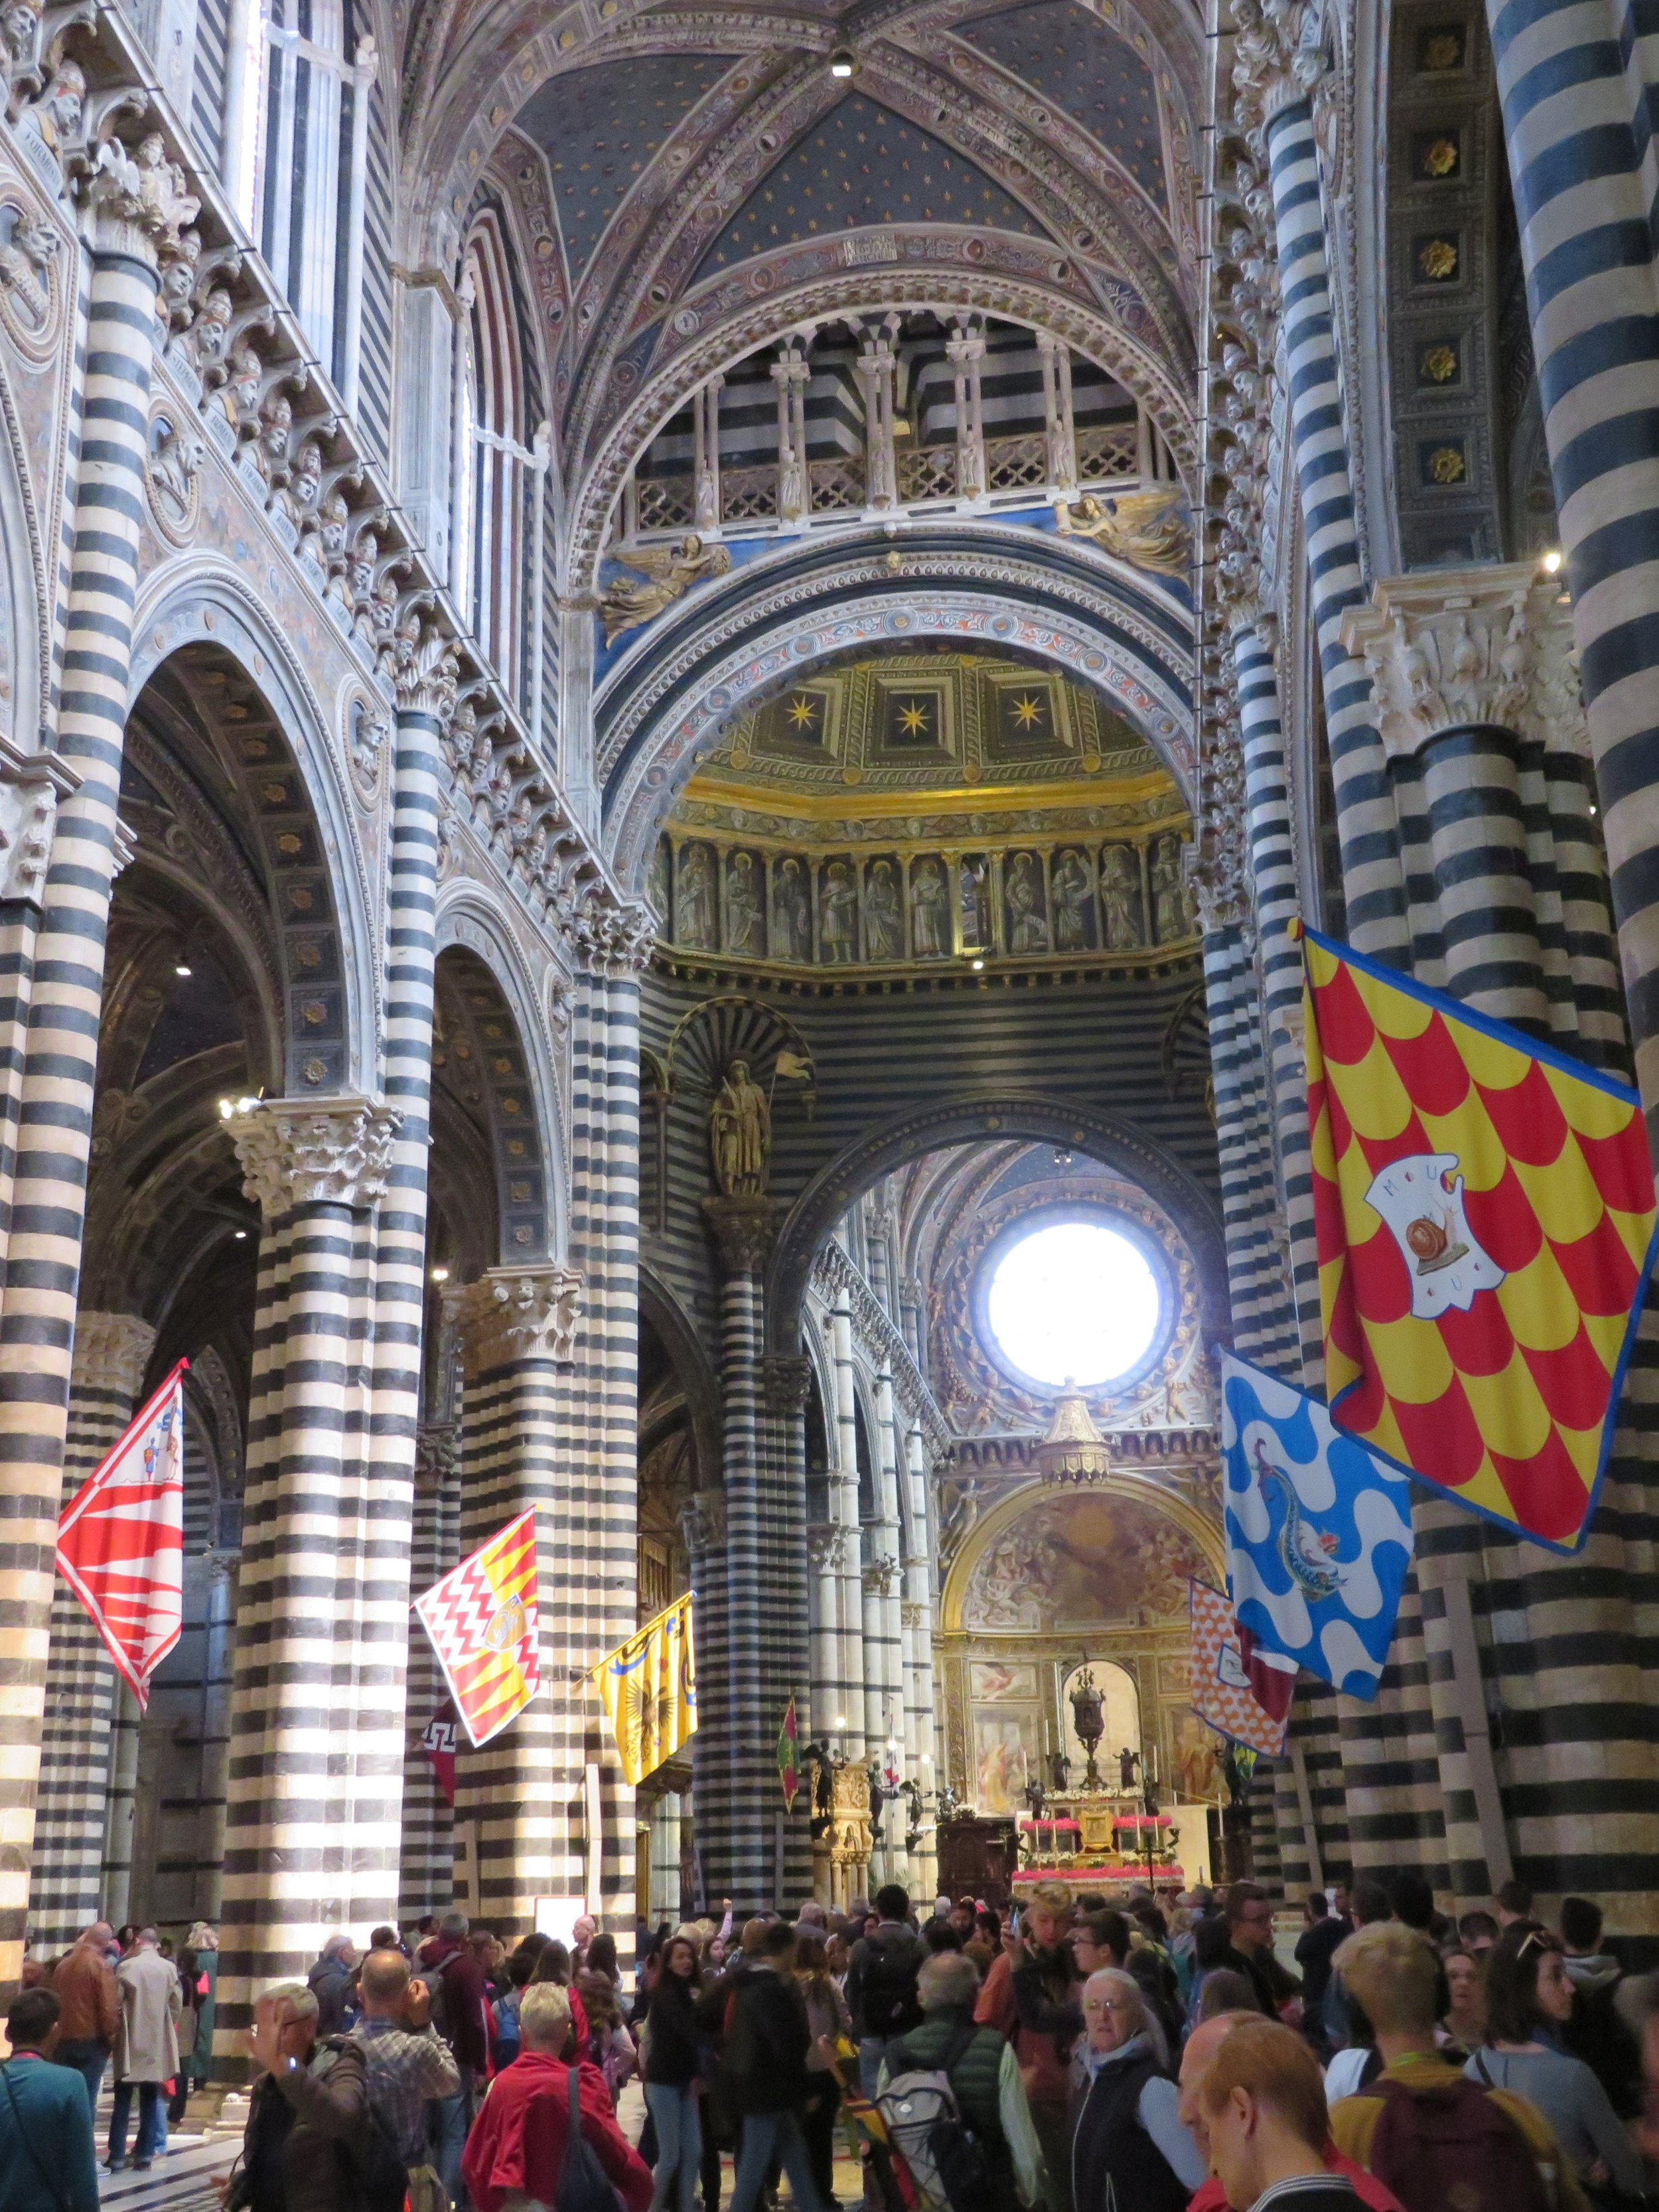 Despite the crowds, we found the Duomo to be mind-bogglingly beautiful. The detail is beyond belief.